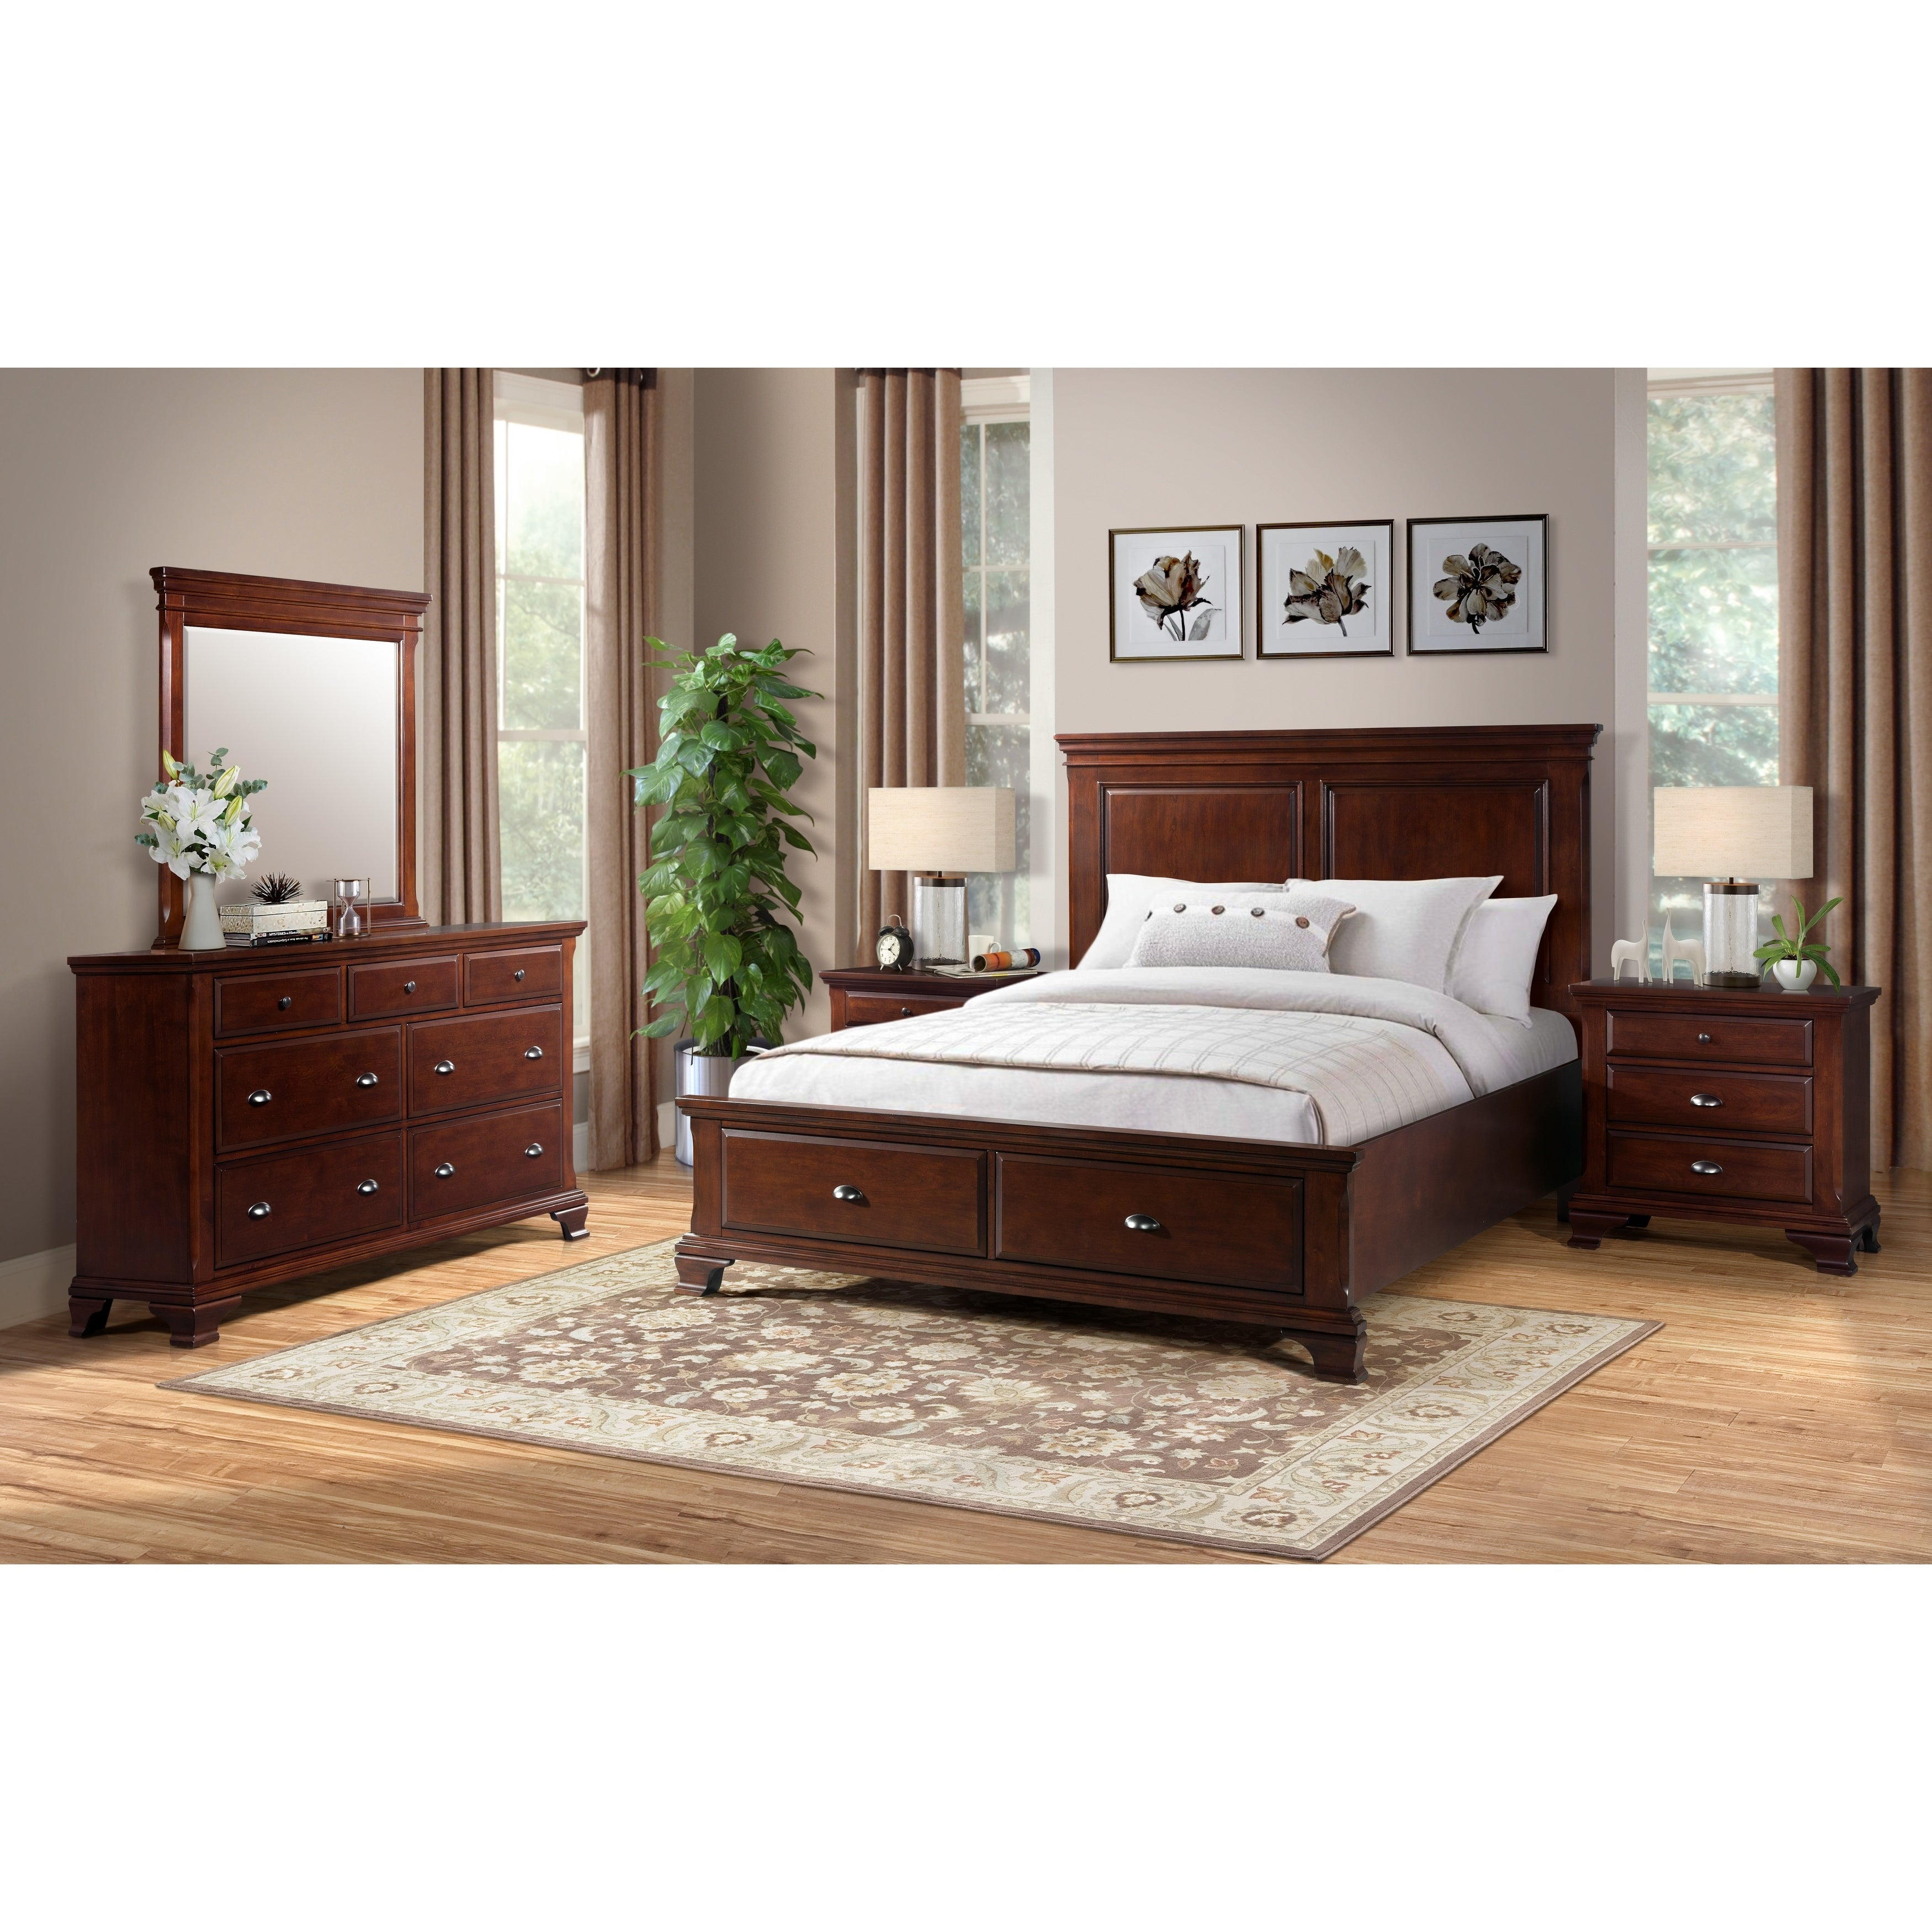 Shop Picket House Furnishings Brinley Cherry Storage 5-Piece Bedroom ...